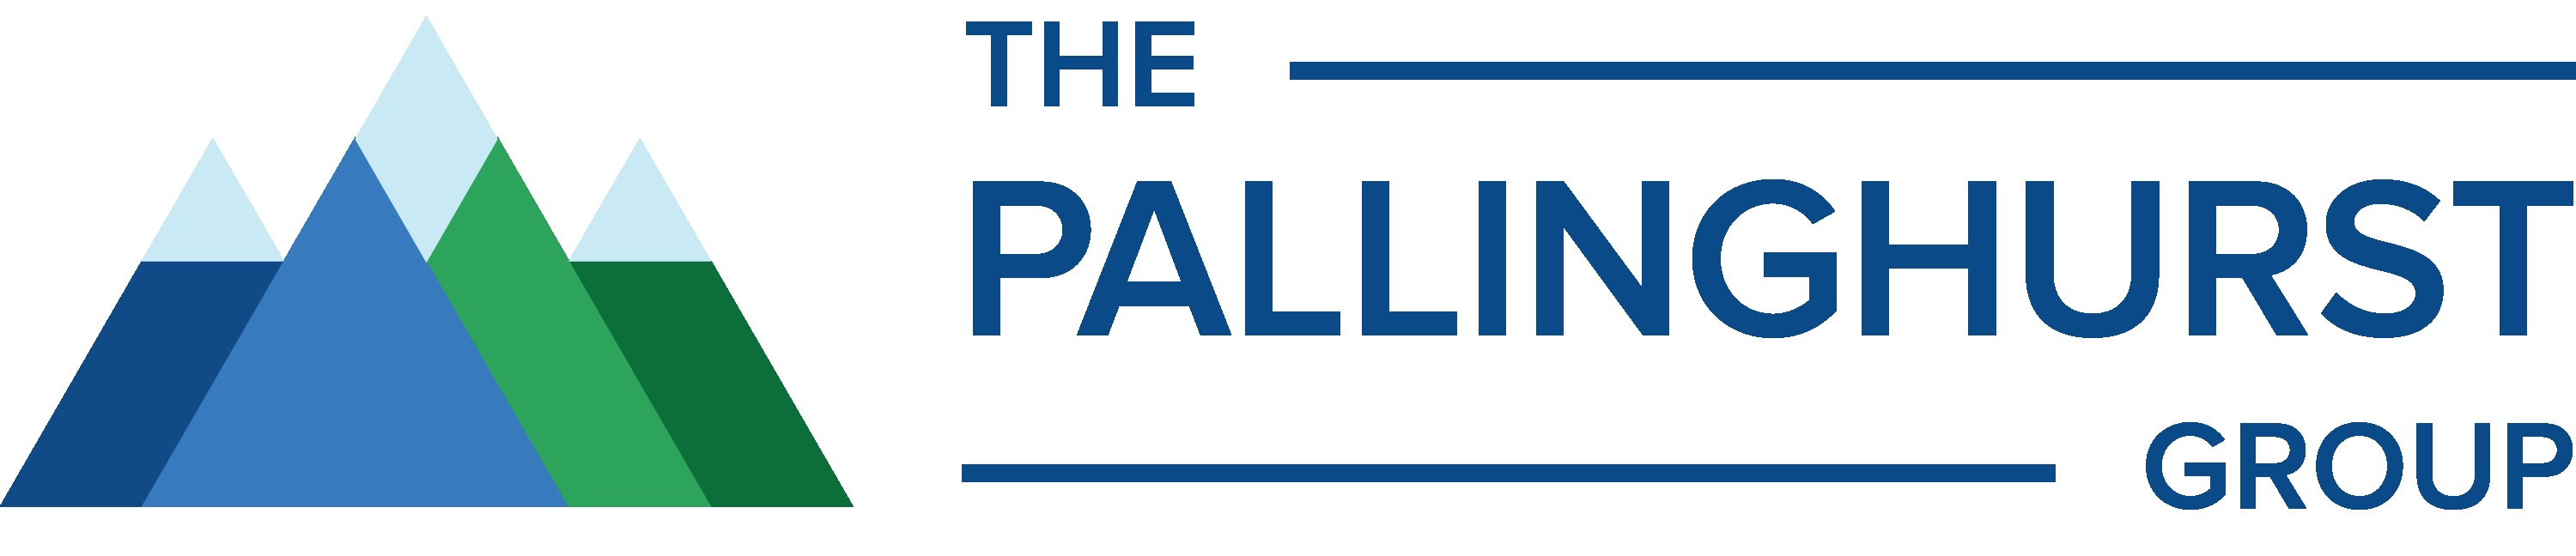 The Pallinghurst Group - company logo